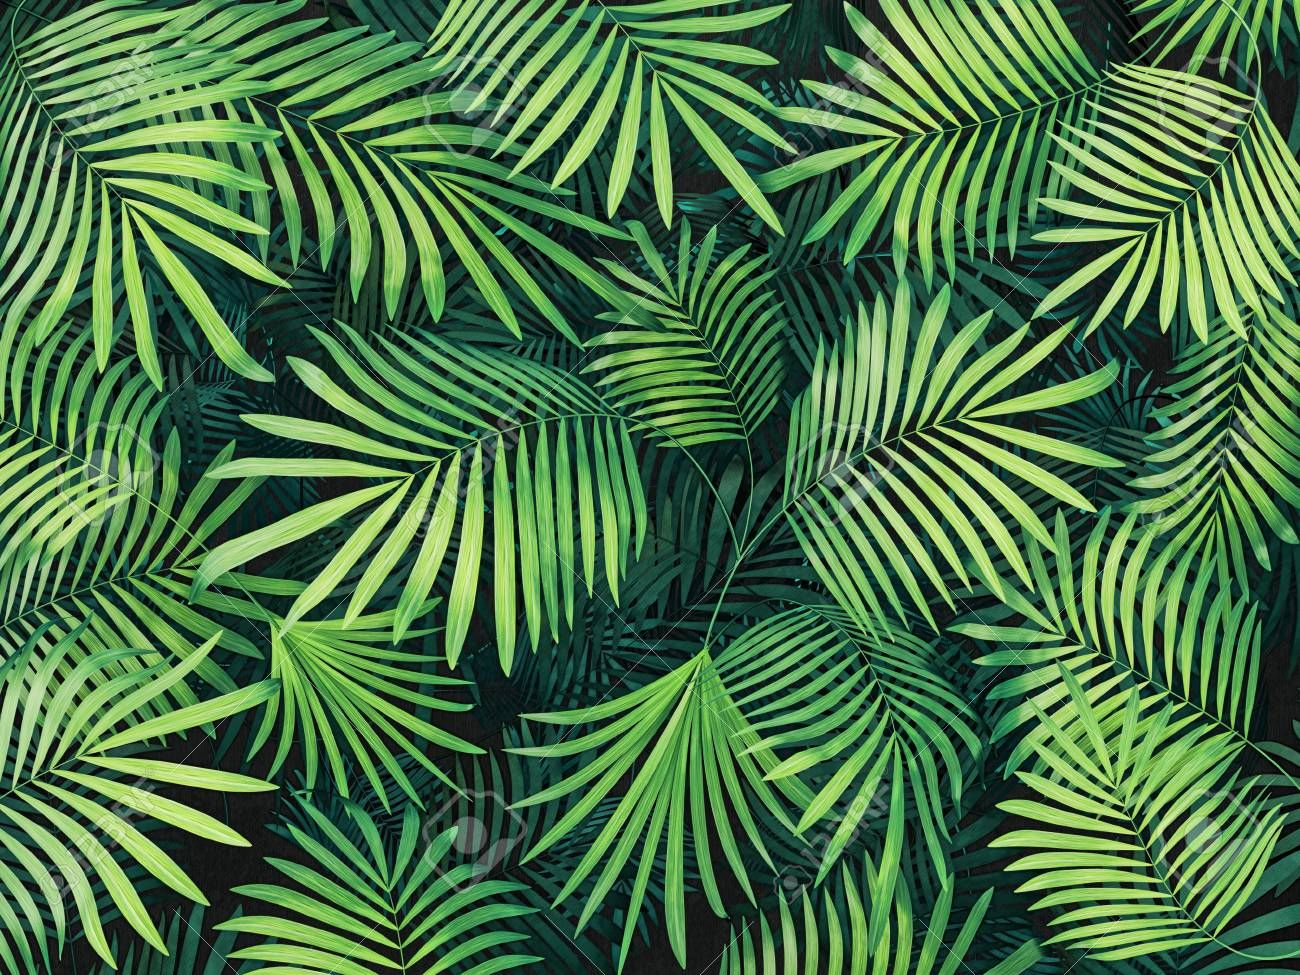 Green Tropical Leaves Background 3d Render Illustration Affiliate Leaves Tropical Green Ill Palm Trees Wallpaper Tropical Background Tree Wallpaper